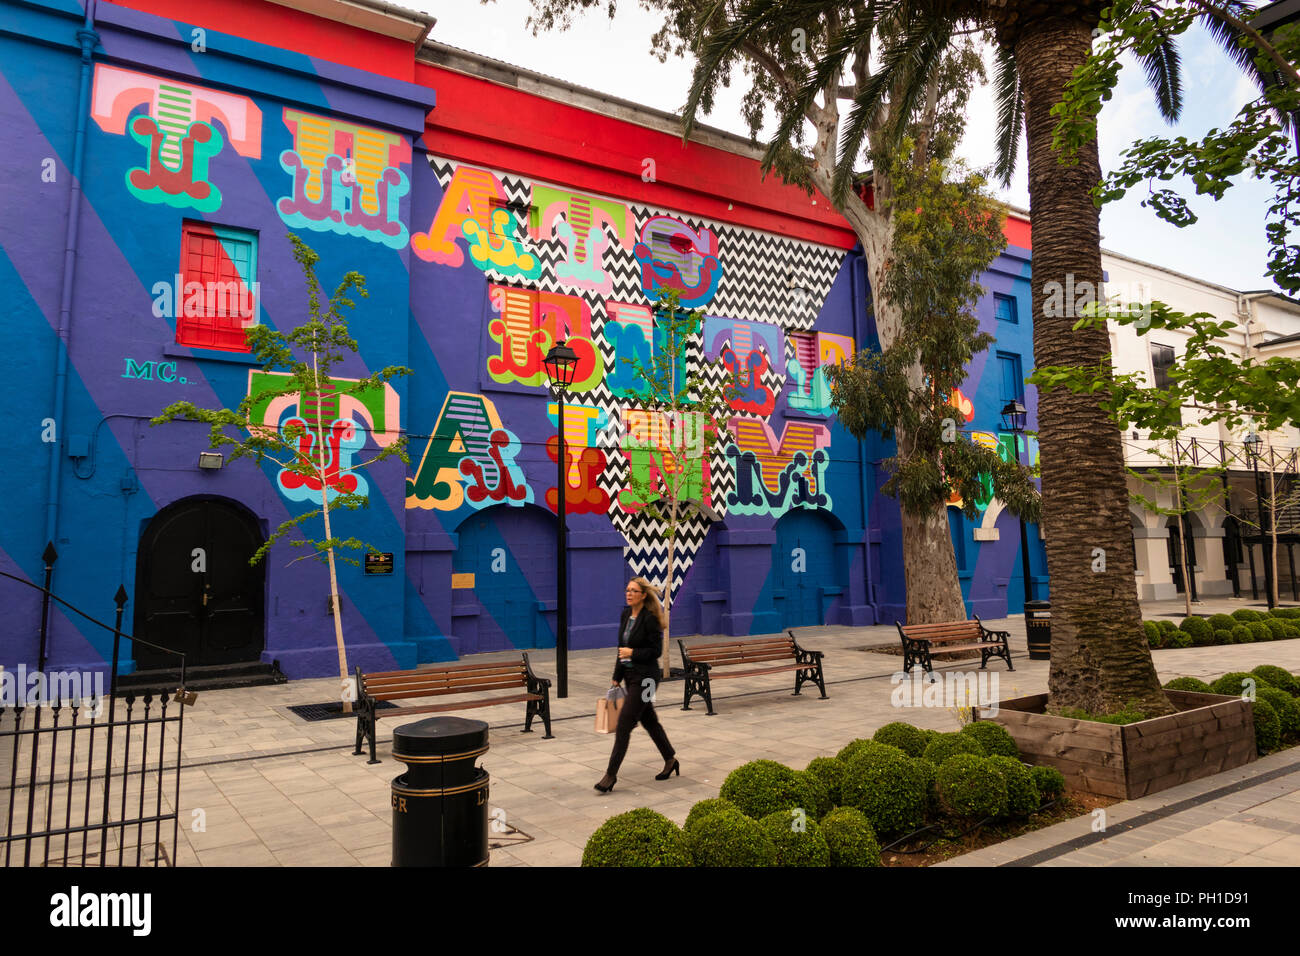 Gibraltar, Main Street, Inces Hall theatre, artist Ben Eines 'That's Entertainment. wall painting - Stock Image